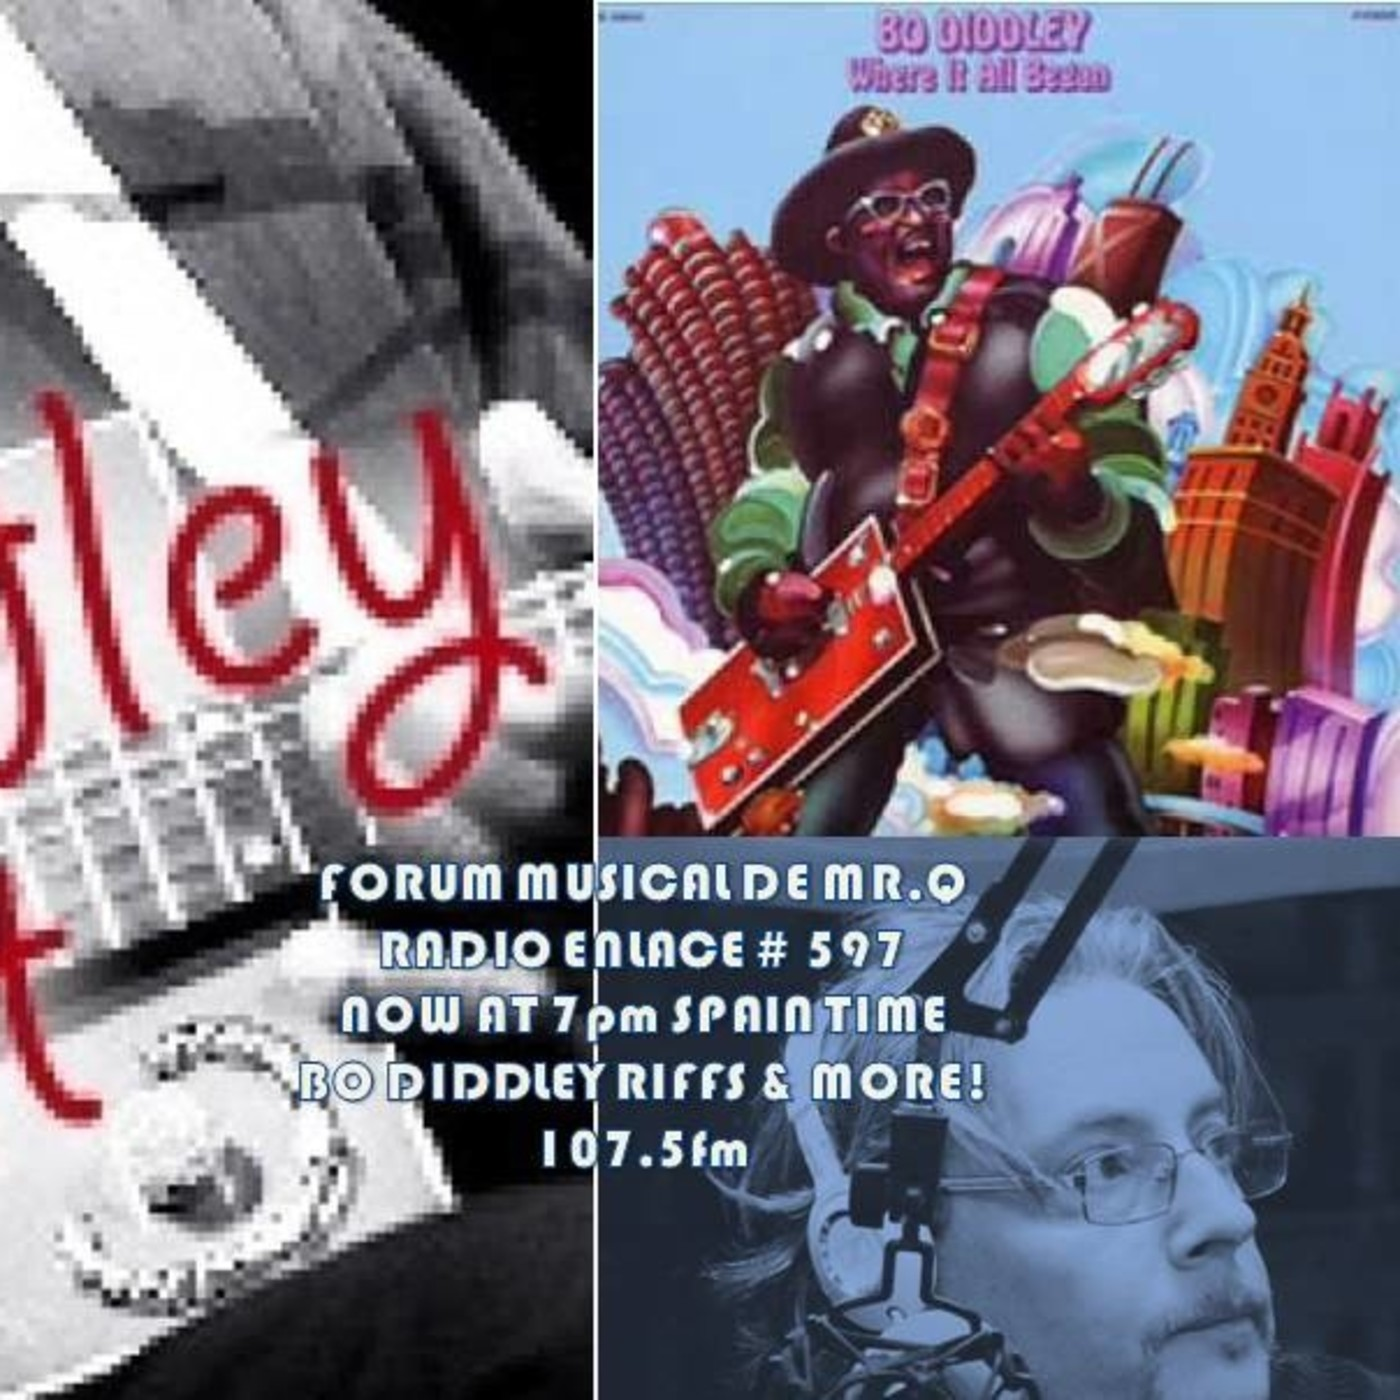 Forum Musical de Mr Q # 597 BO DIDDLEY RIFFS AND MORE